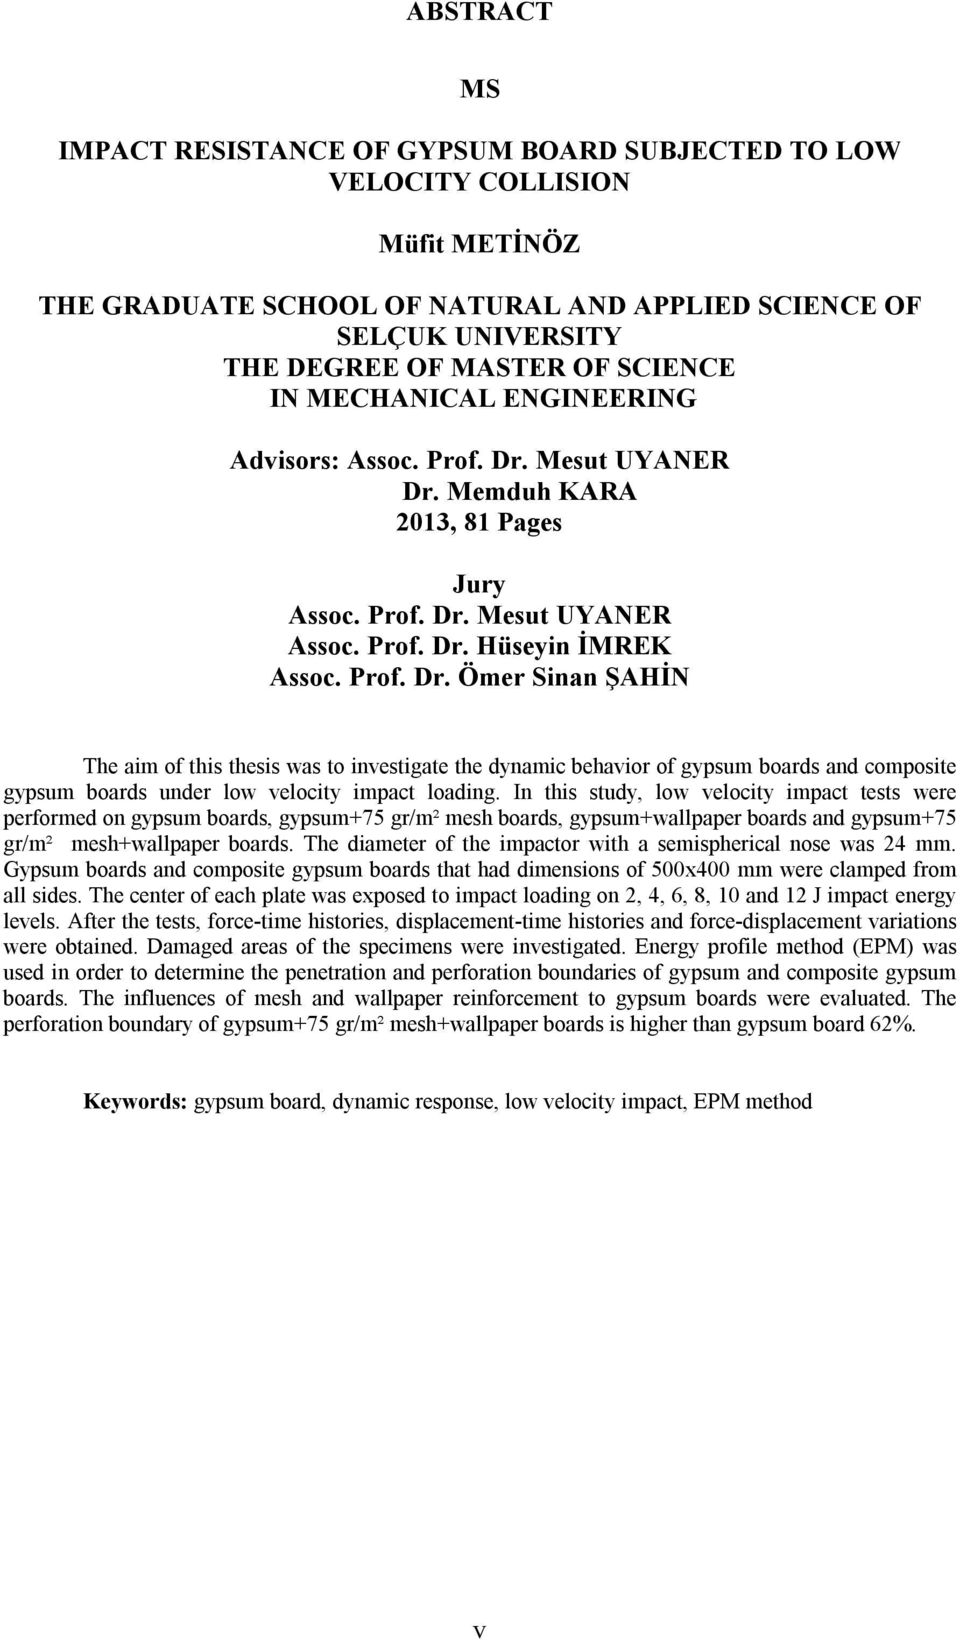 Mesut UYANER Dr. Memduh KARA 2013, 81 Pages Jury Assoc. Prof. Dr. Mesut UYANER Assoc. Prof. Dr. Hüseyin İMREK Assoc. Prof. Dr. Ömer Sinan ŞAHİN The aim of this thesis was to investigate the dynamic behavior of gypsum boards and composite gypsum boards under low velocity impact loading.